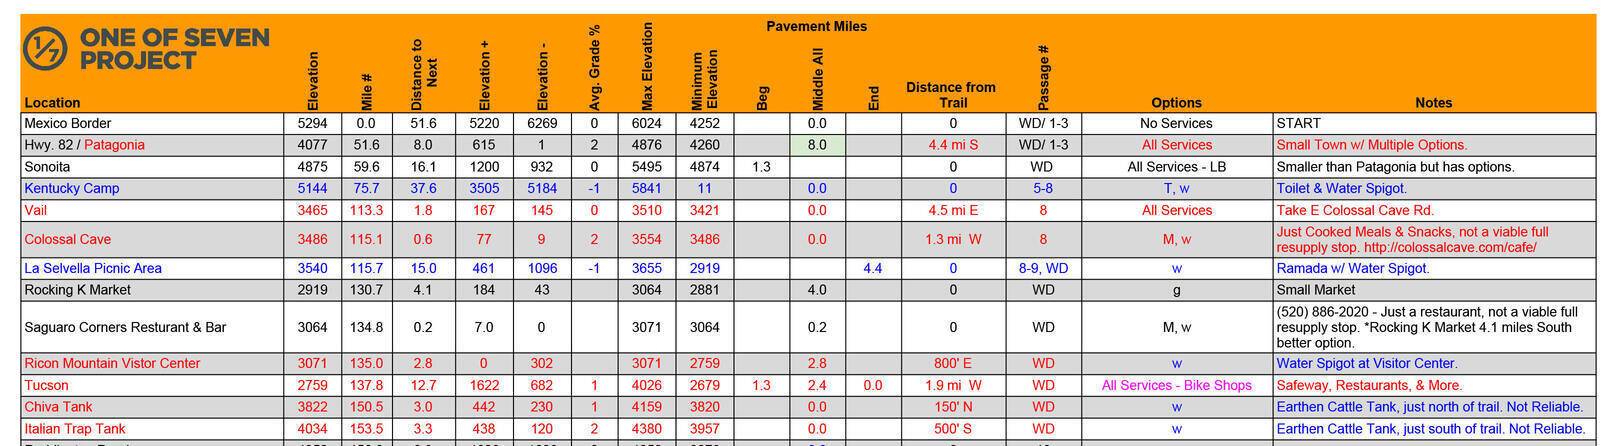 2020 AZTR 1000 DATA SHEET EXAMPLE BIKEPACKING GUIDES PLANNING AIDS